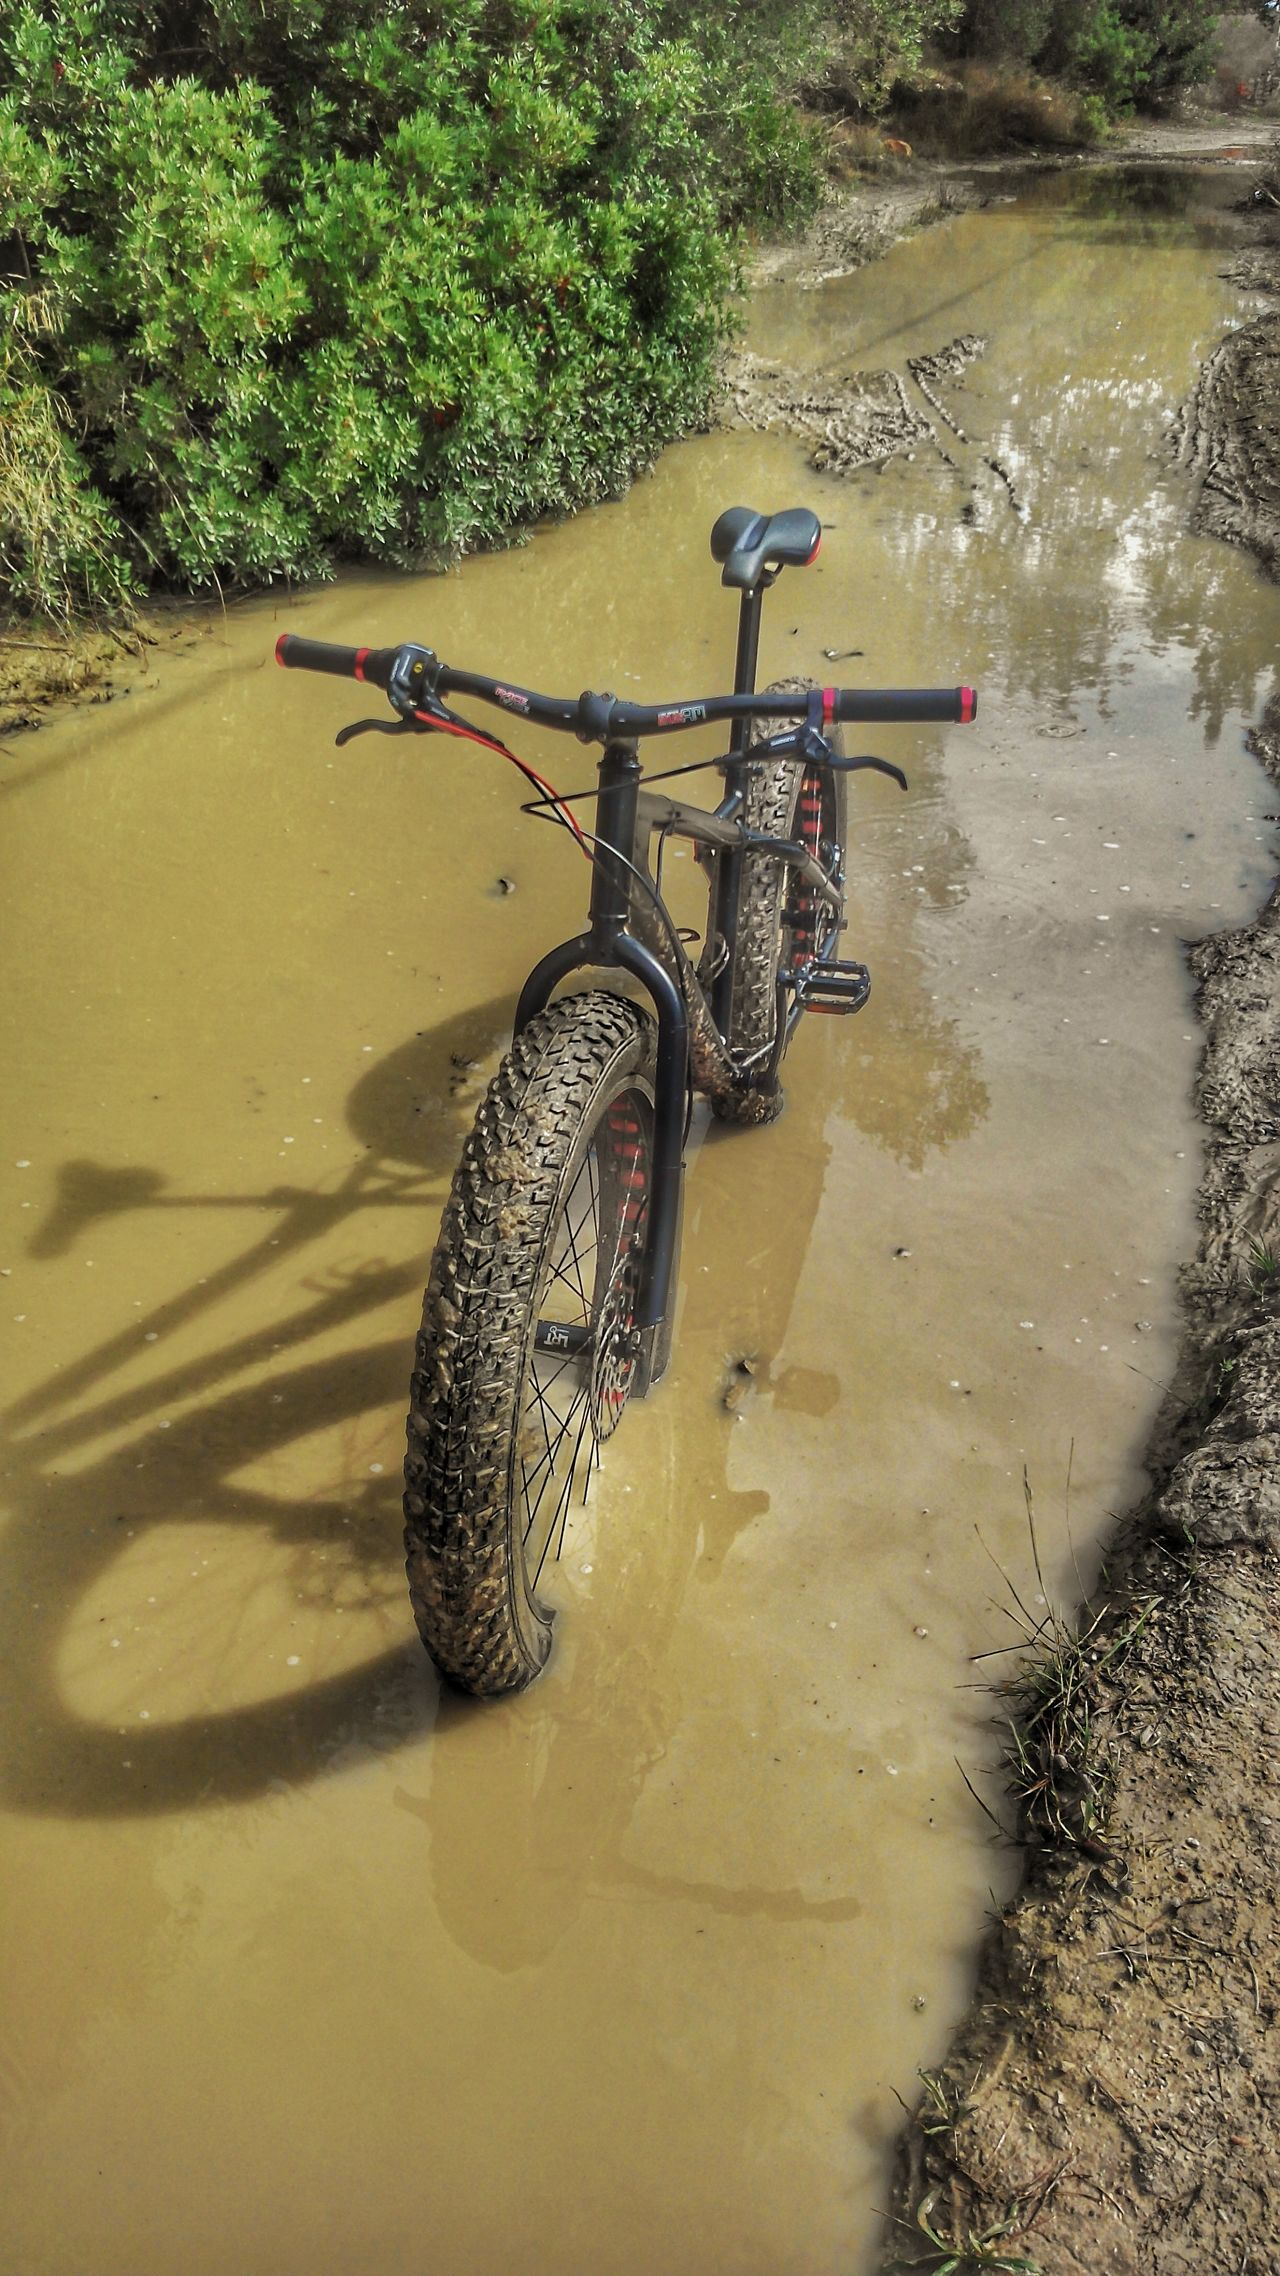 Fatbike Sports Photography Mallorca, Bicycle Mode Of Transport No People High Angle View Nature Muddy Track